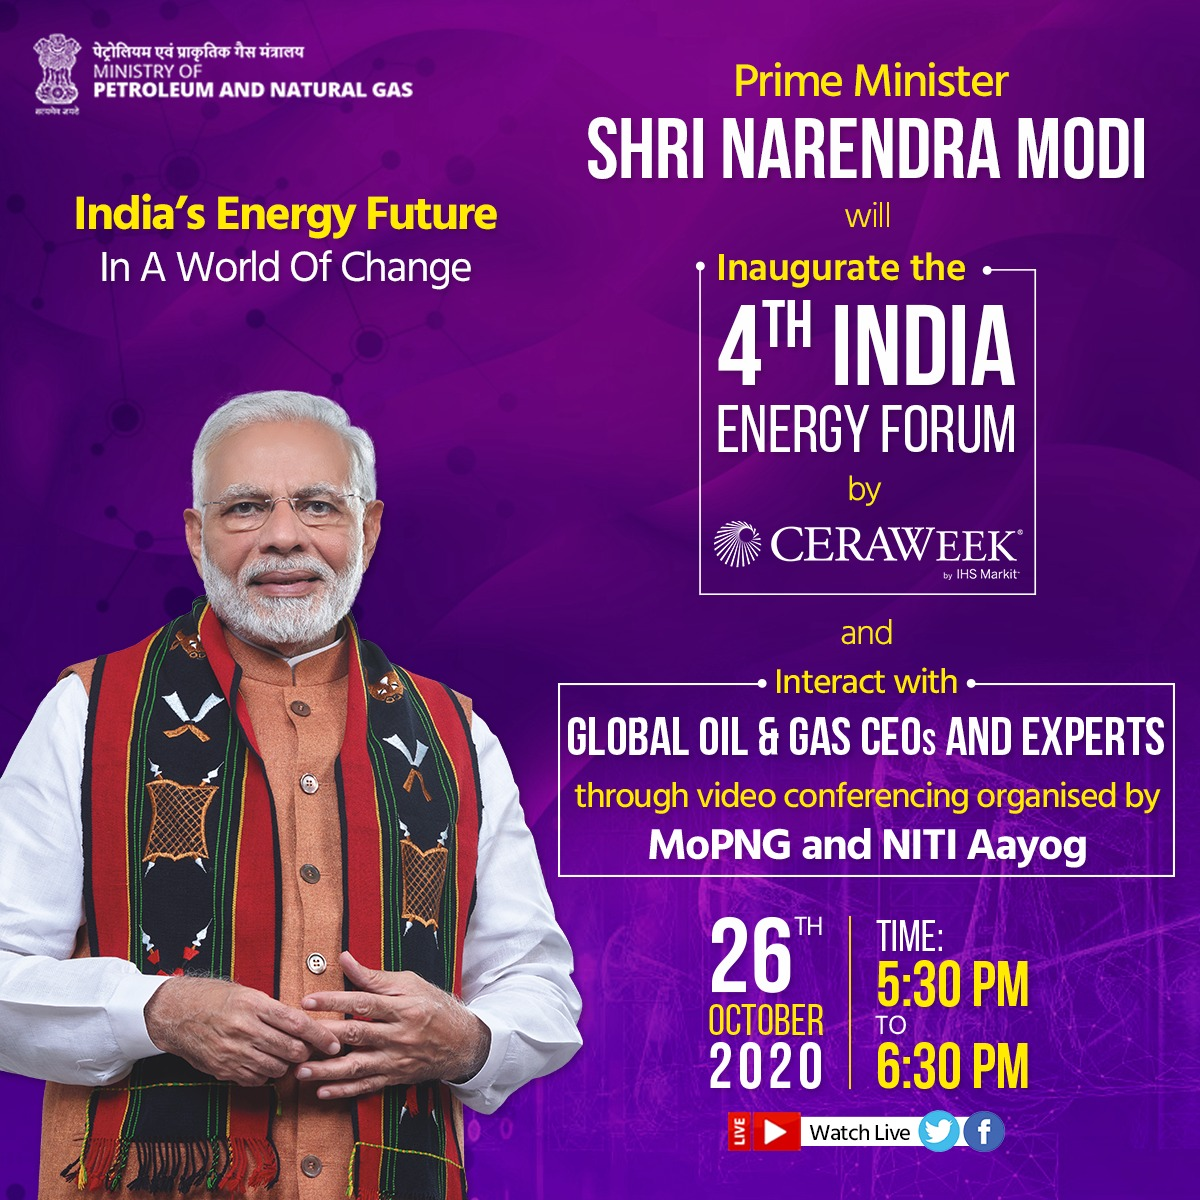 Tomorrow, Hon. PM Shri @narendramodi will inaugurate the 4th #IndiaEnergyForum by #CERAWeek and interact with global oil and gas CEOs through video conferencing.   Watch Live at 5:30 PM IST.  #IndiaEnergyForum2020 https://t.co/c5uWsgETwm